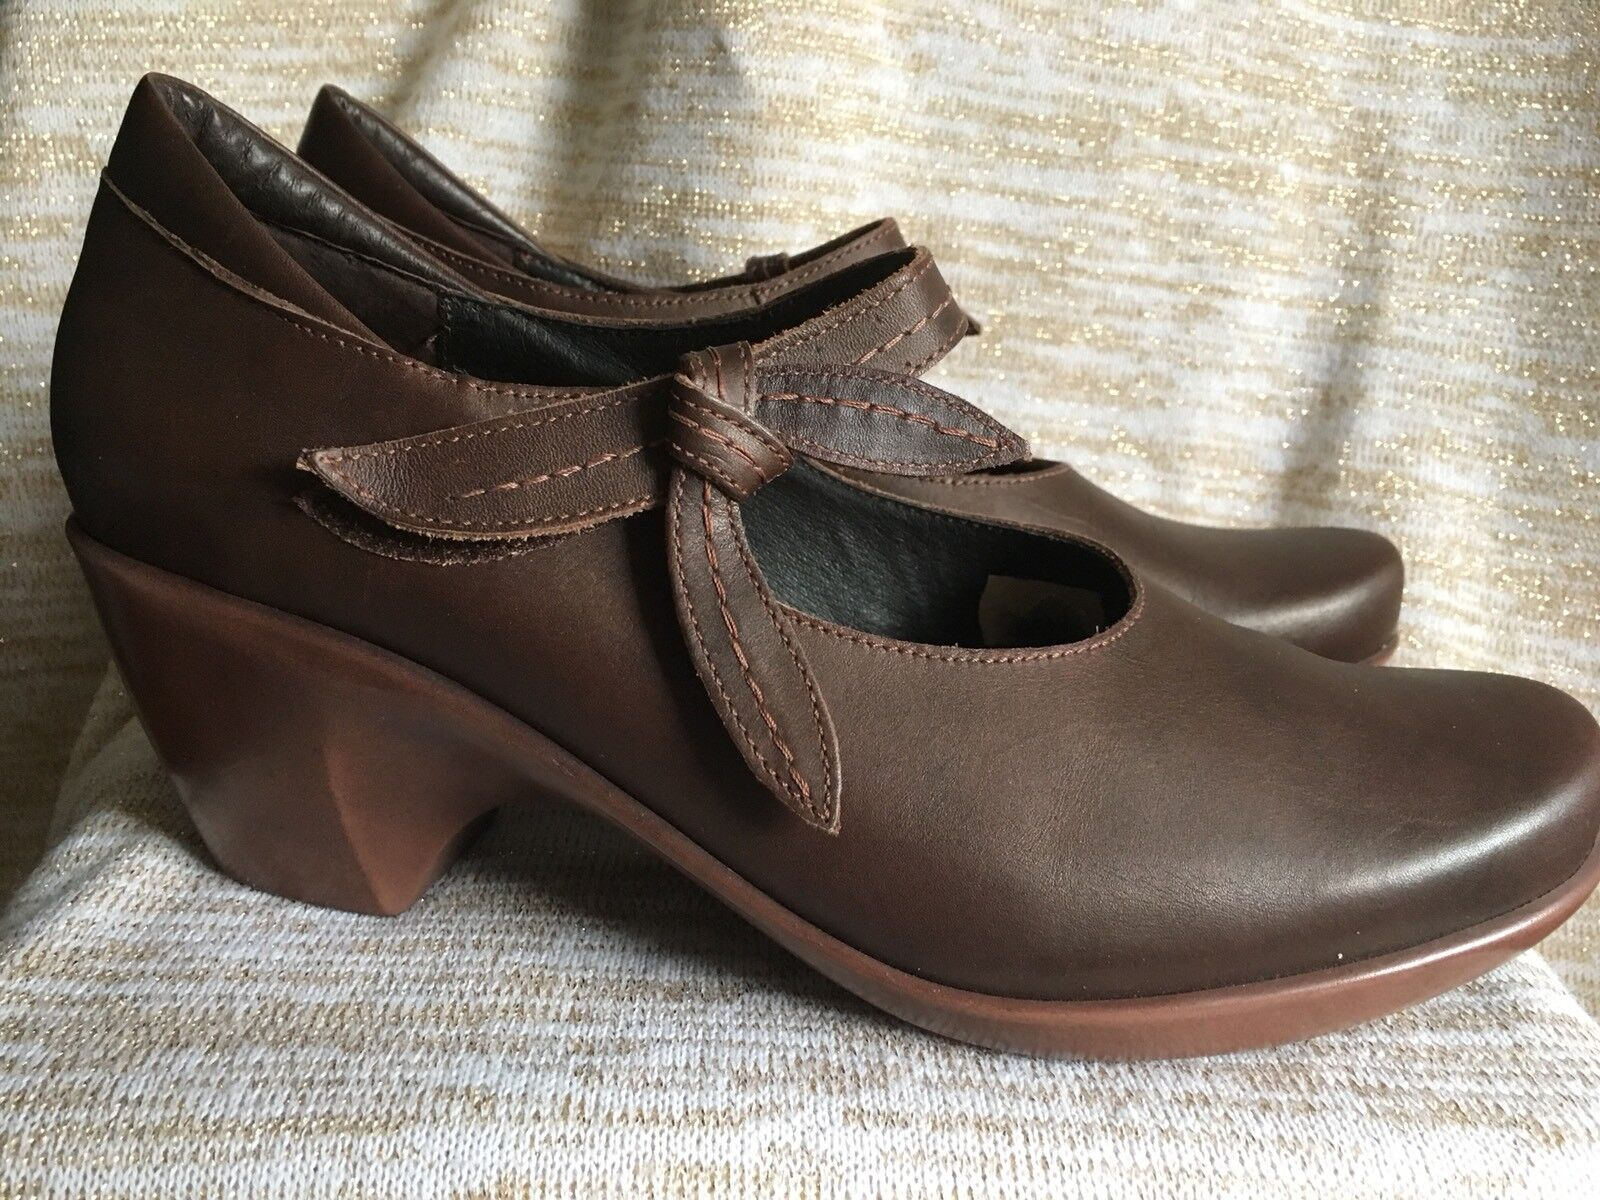 NAOT PLEASURE MARY JANE BROWN LEATHER COMFORT SHOES HEELS SZ 10 ( 41) NEW